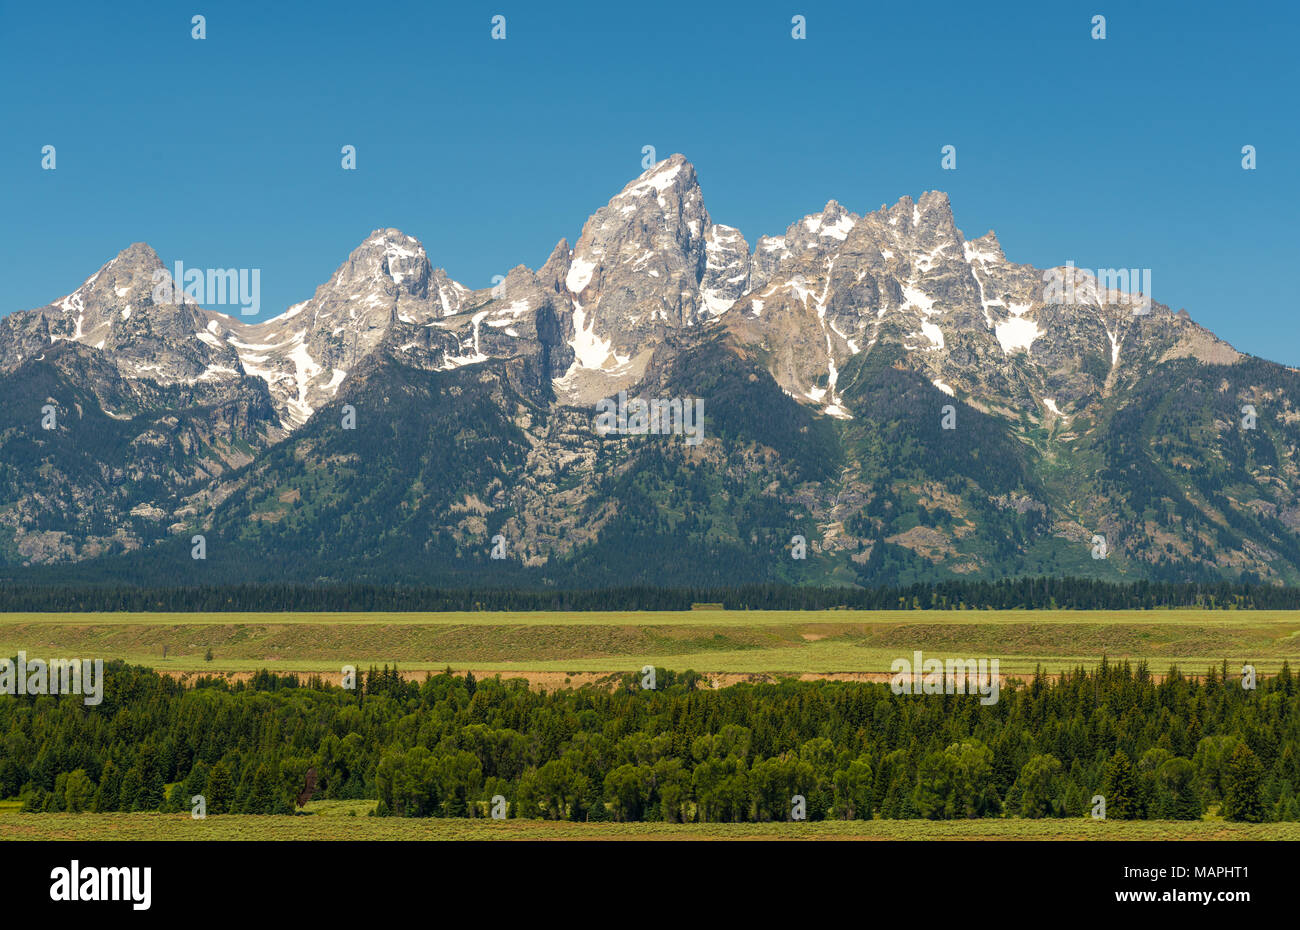 The Grand Teton range with a pine forest in the foreground in the ...